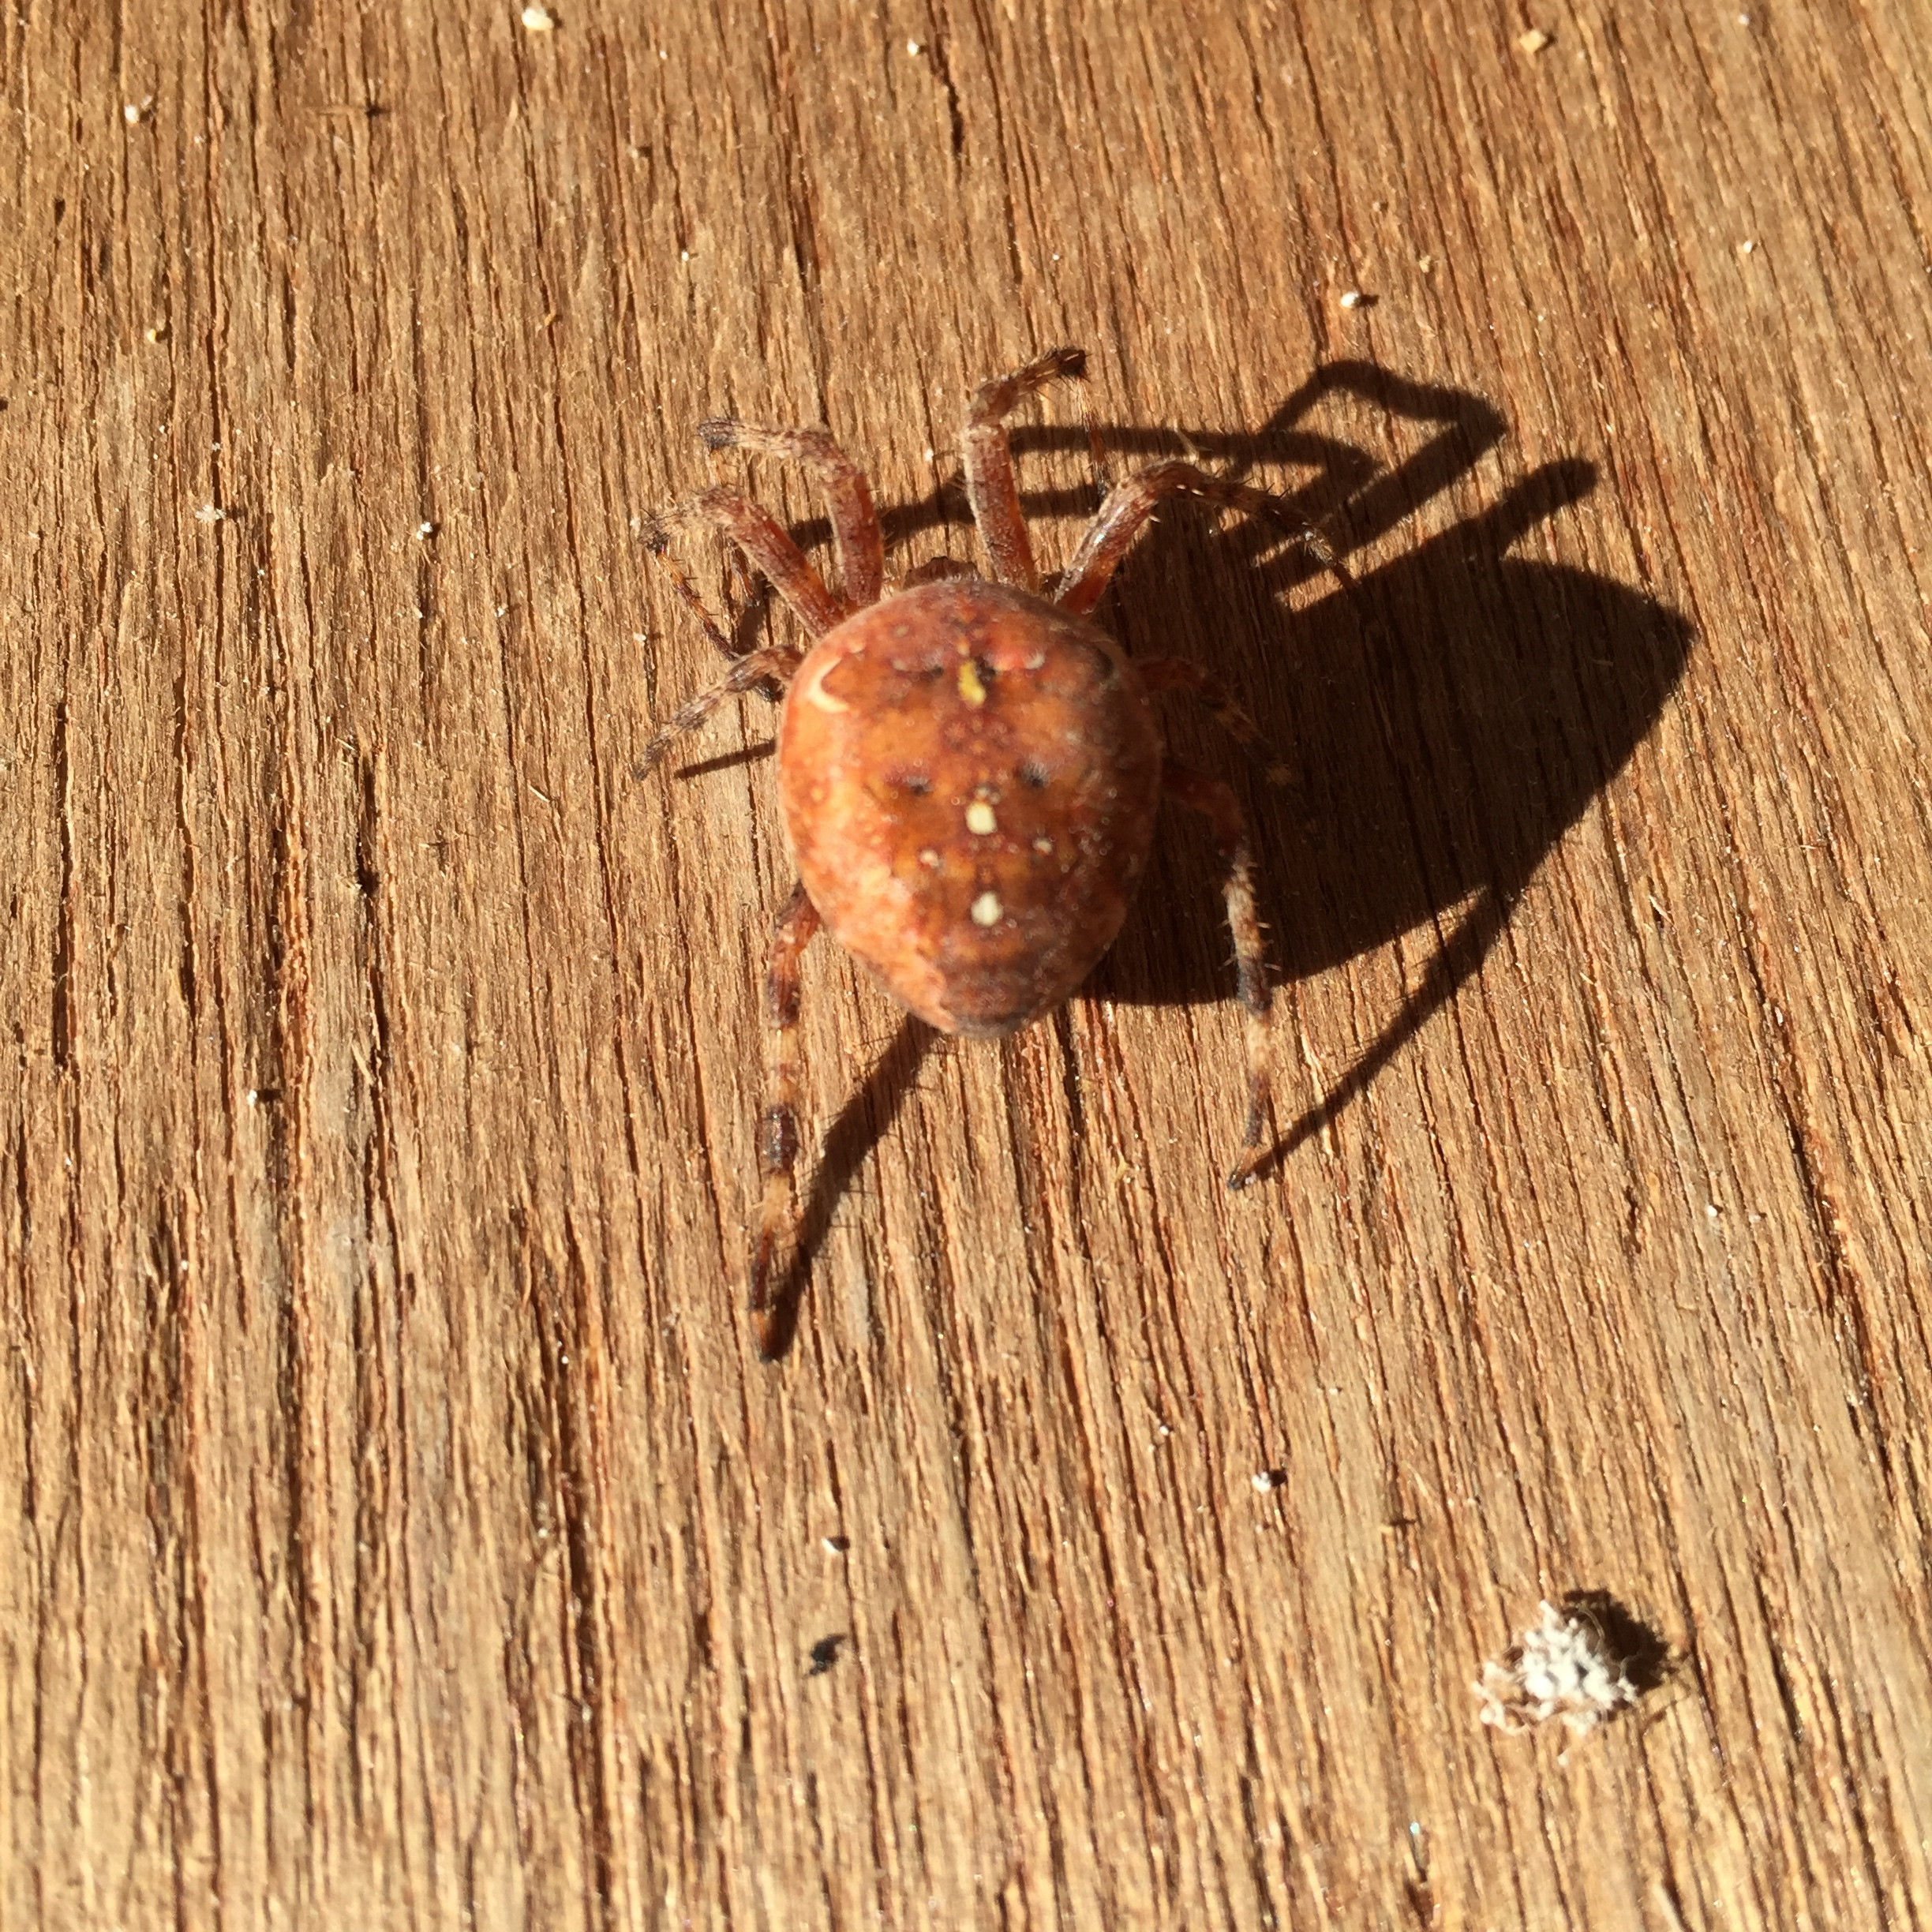 This is not a tiny crab; it's a GIANT spider.